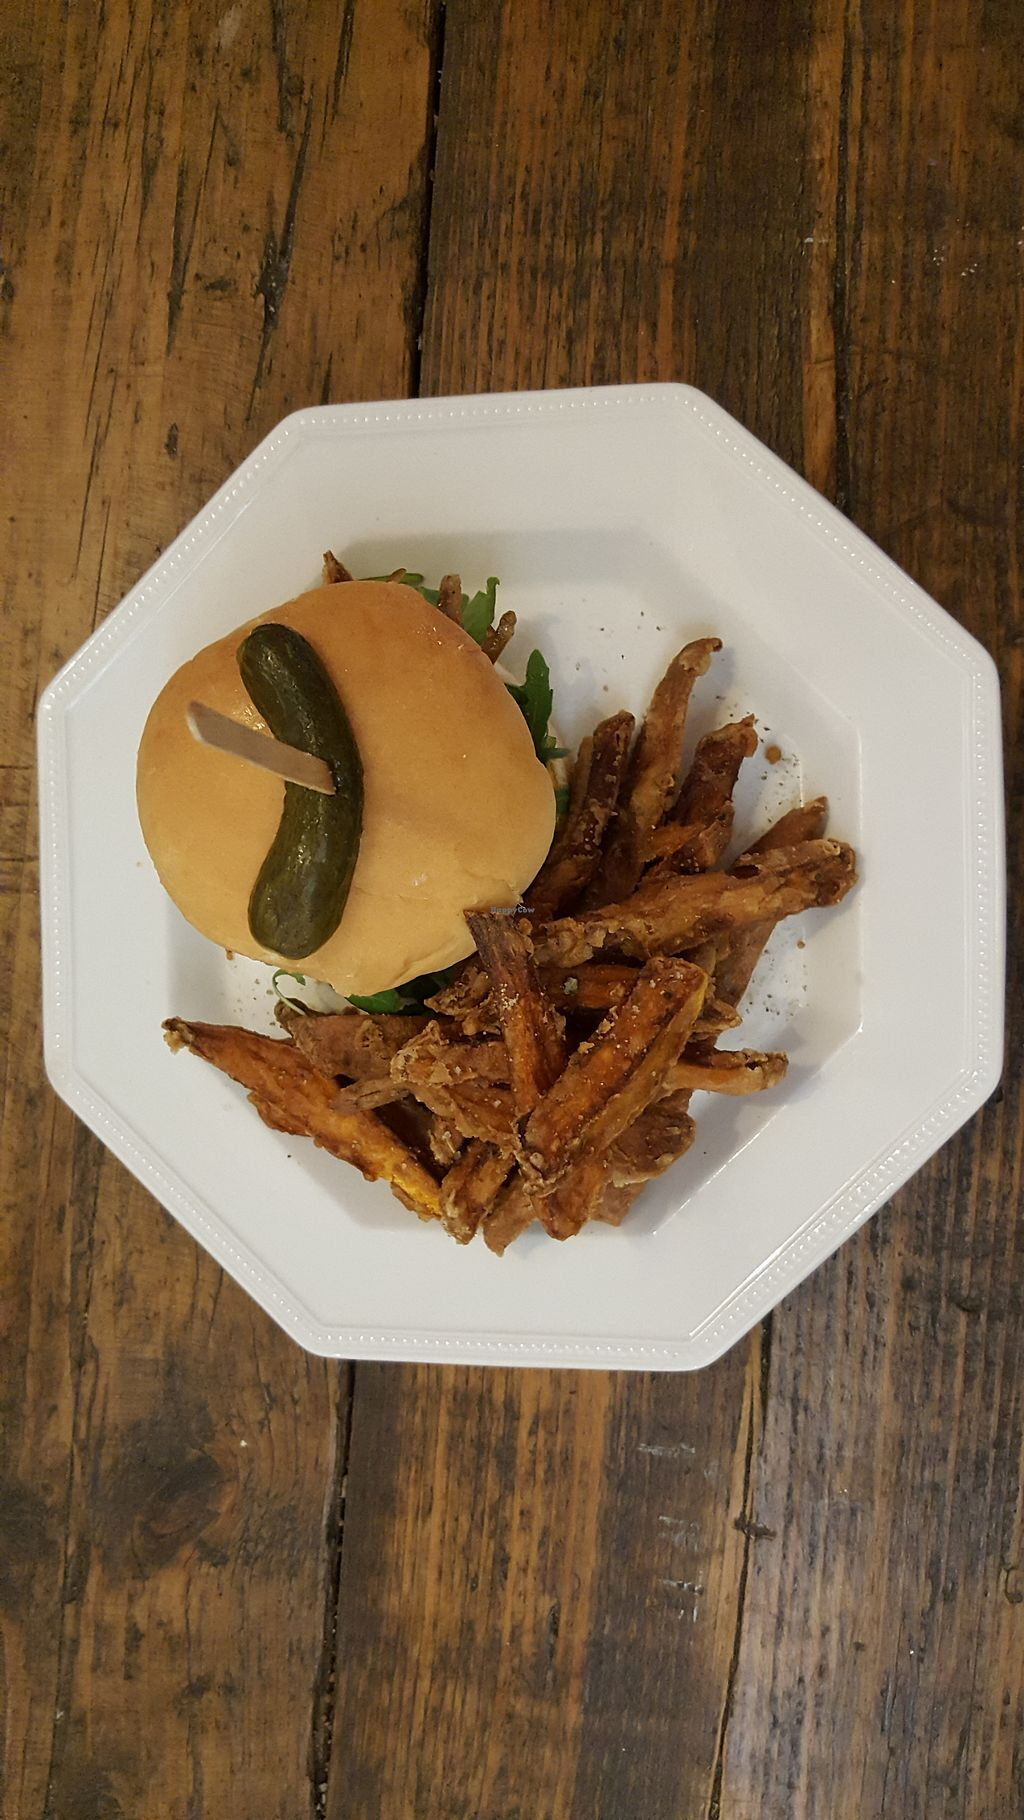 """Photo of Cupcakes and Shhht  by <a href=""""/members/profile/VeganAnnaS"""">VeganAnnaS</a> <br/>Vegan burger and sweet potato fries <br/> July 9, 2017  - <a href='/contact/abuse/image/69166/278259'>Report</a>"""